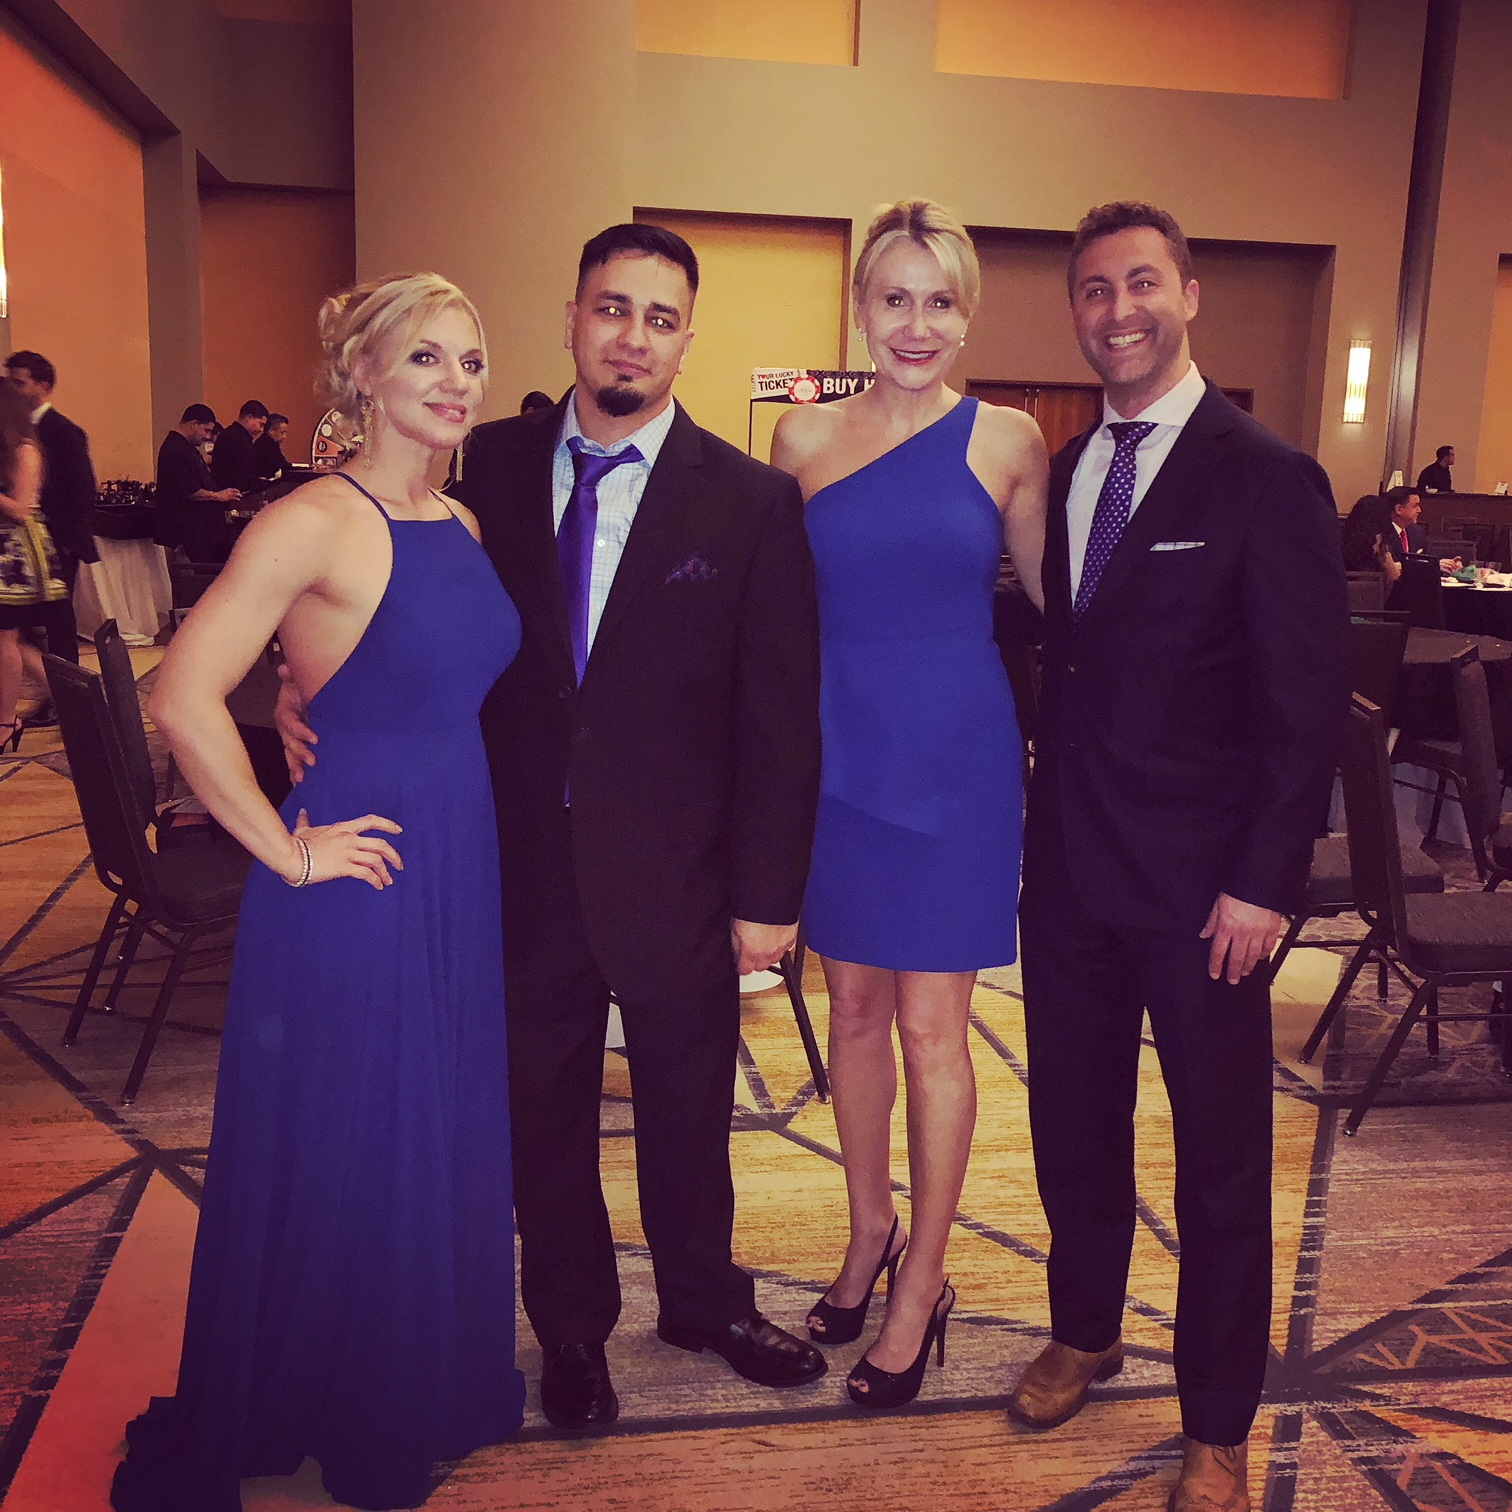 February 17, 2018: Mission Miracle K9 Rescue Texas fundraiser - Watchdog Mary attended the Kings and Queens of Good Hearts fundraiser in San Antonio, Texas as a guest of Mission Miracle K9 Rescue.